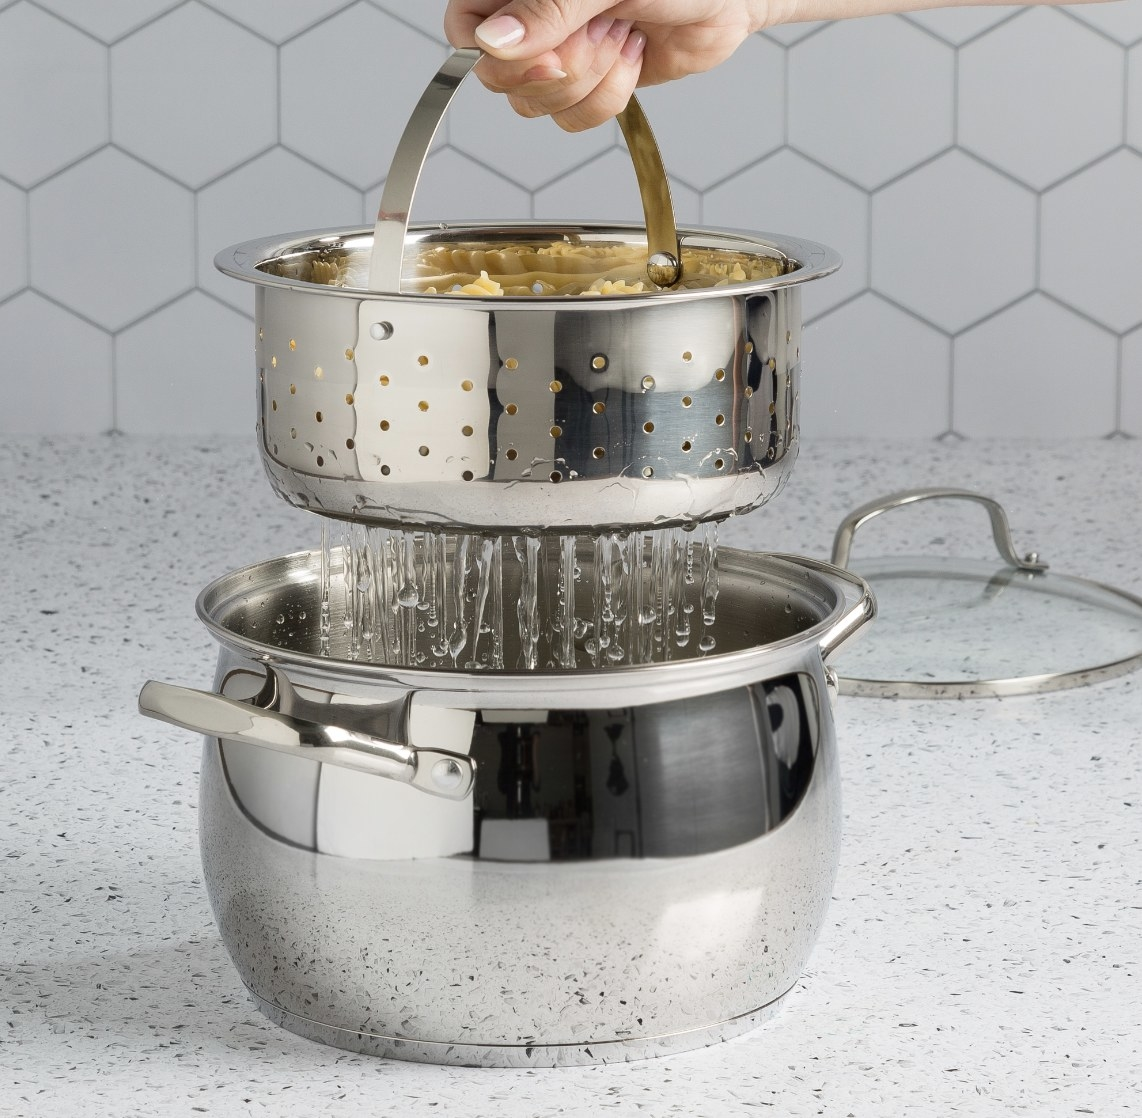 There is large stainless steal pot underneath a smaller one with holes draining pasta